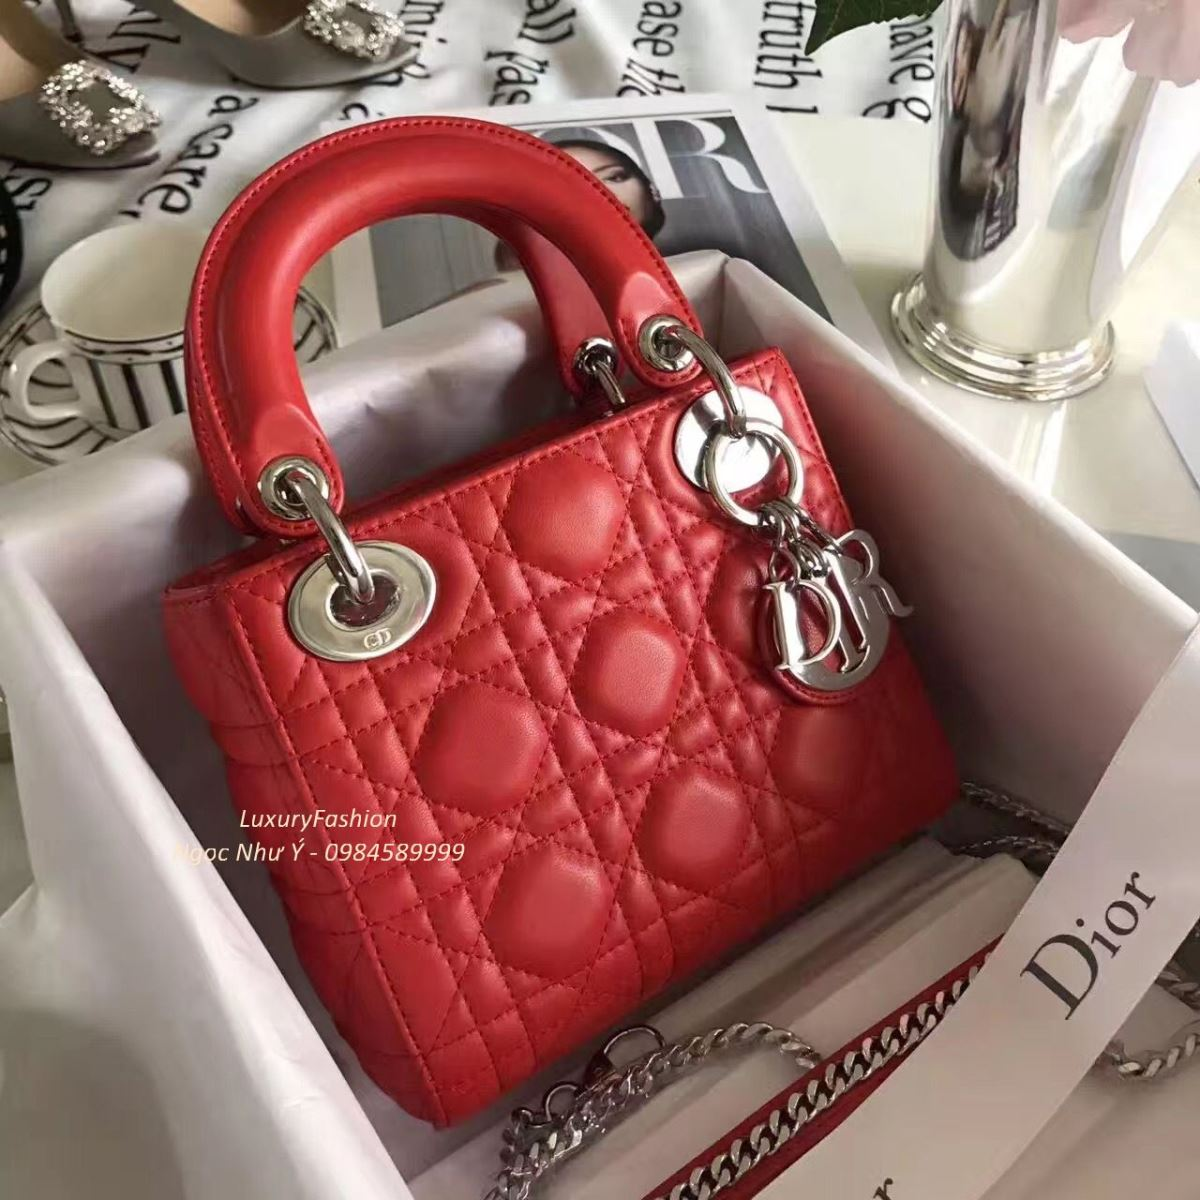 41ab57bed5 Mini Lady Dior Bag Red Lambskin